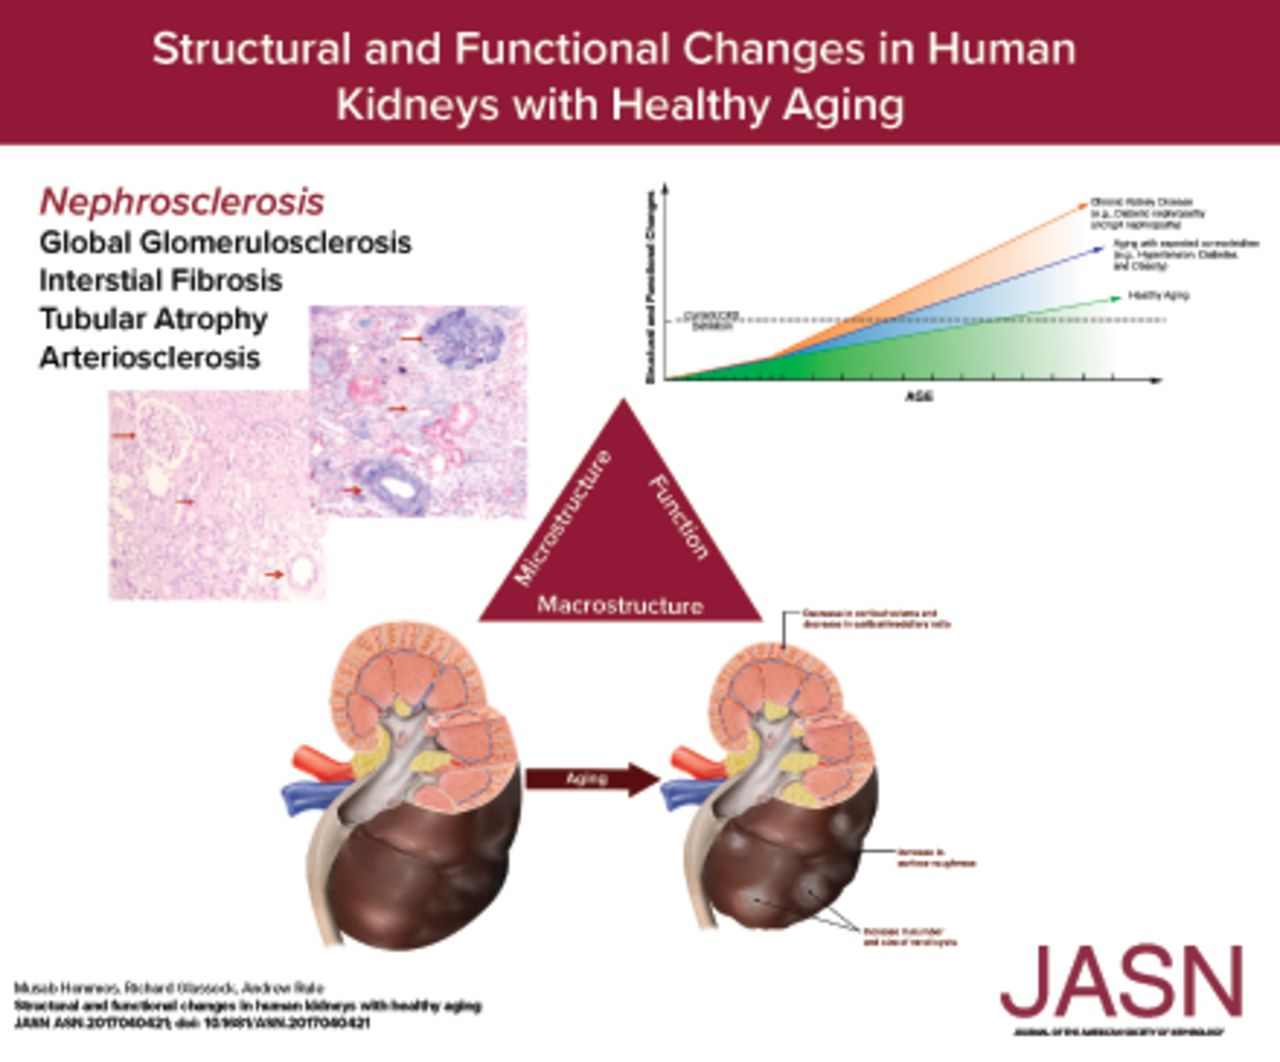 Structural And Functional Changes In Human Kidneys With Healthy